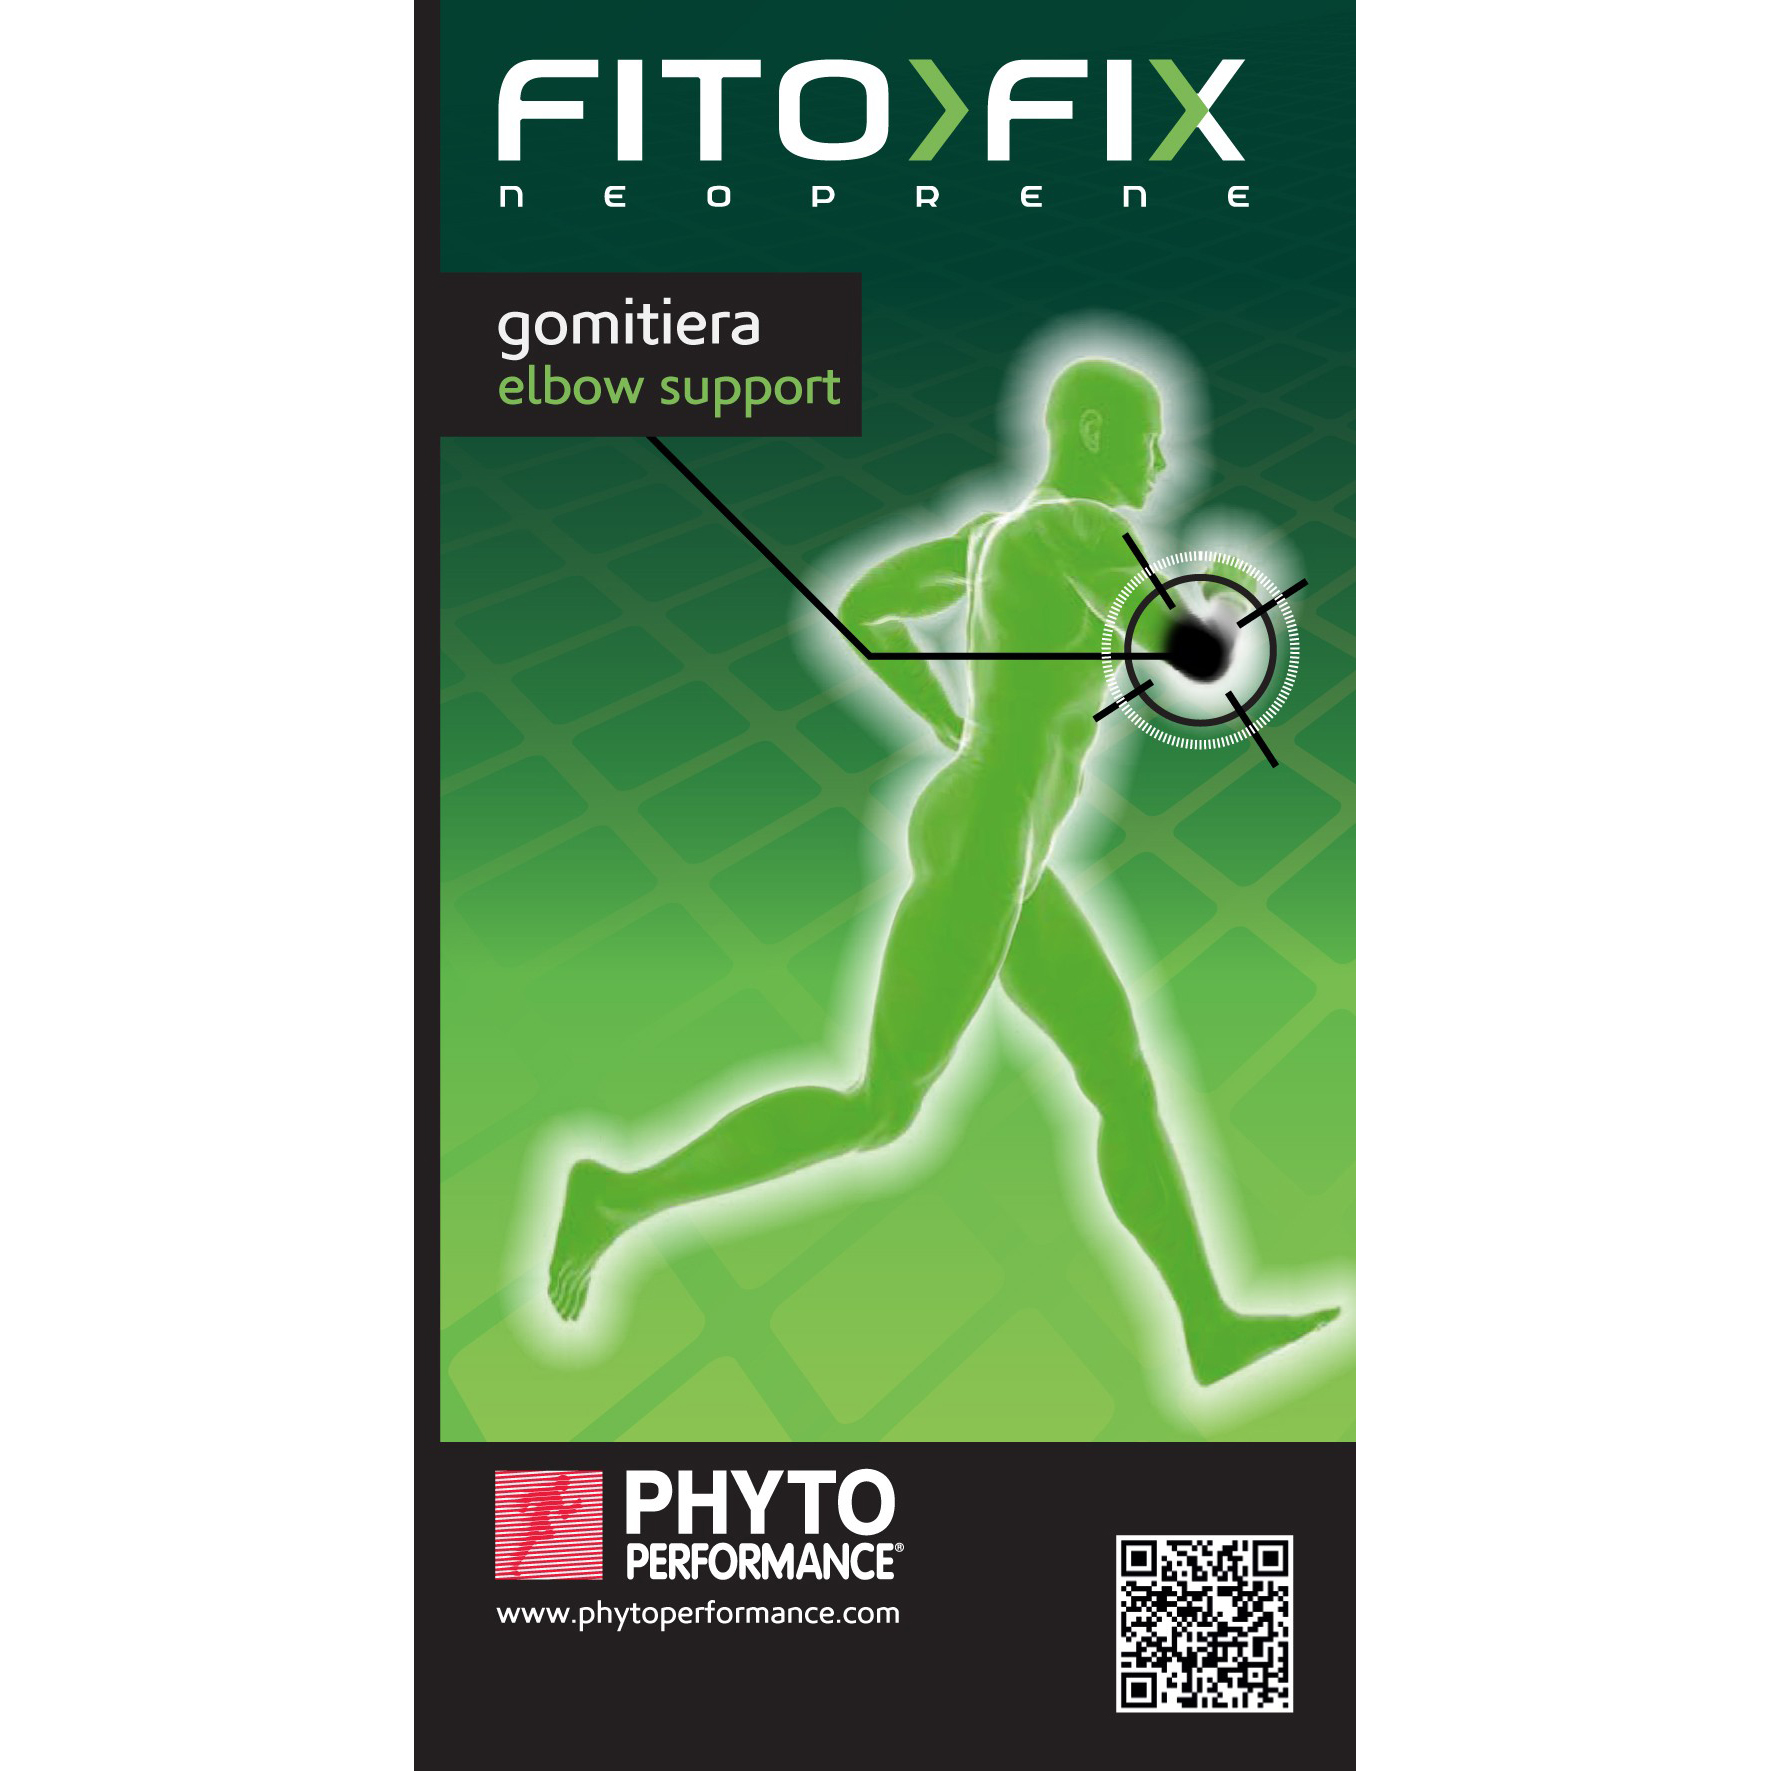 PHYTO PERFORMANCE FITOFIX ELBOW